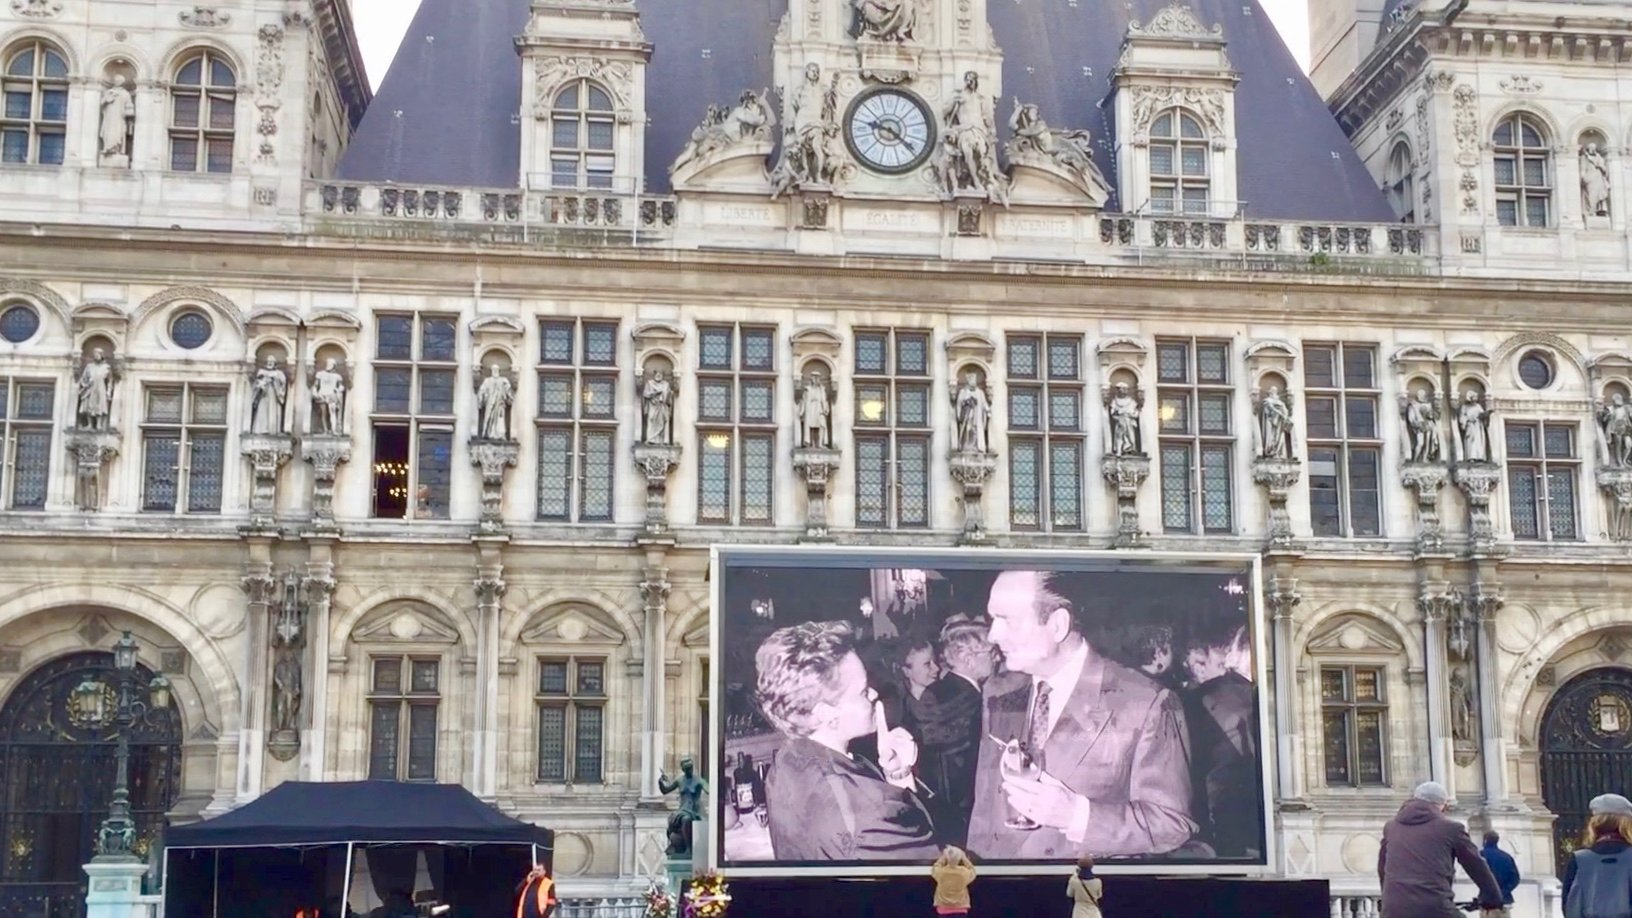 Image in front of Hotel de Ville in hommage to Jacques Chirac